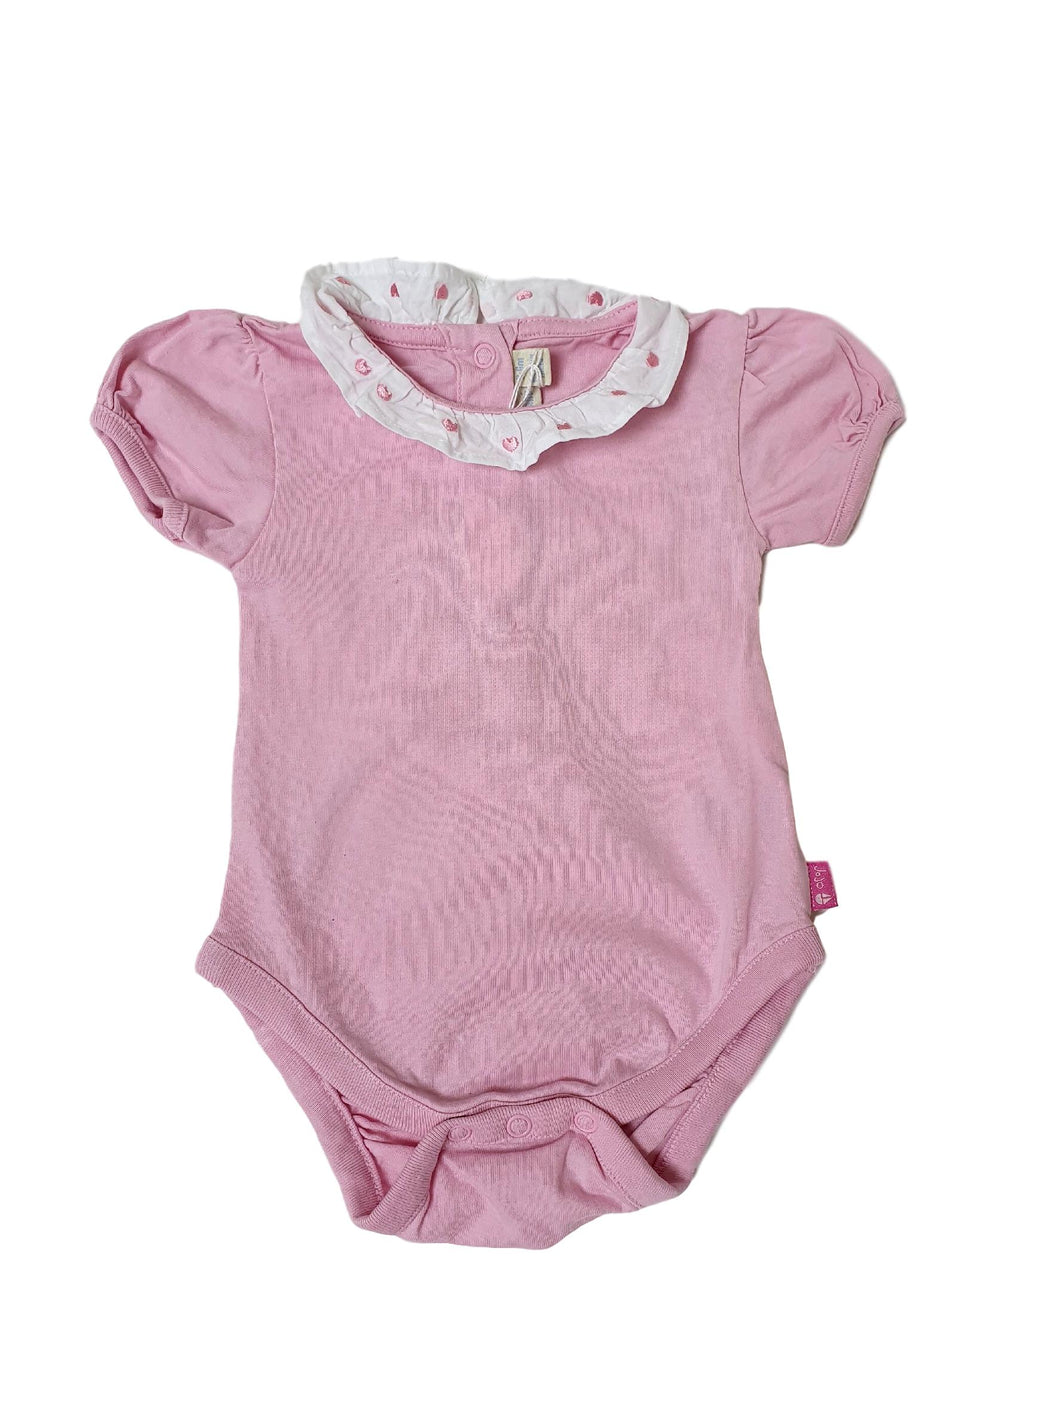 JOJO girl bodysuit 3m